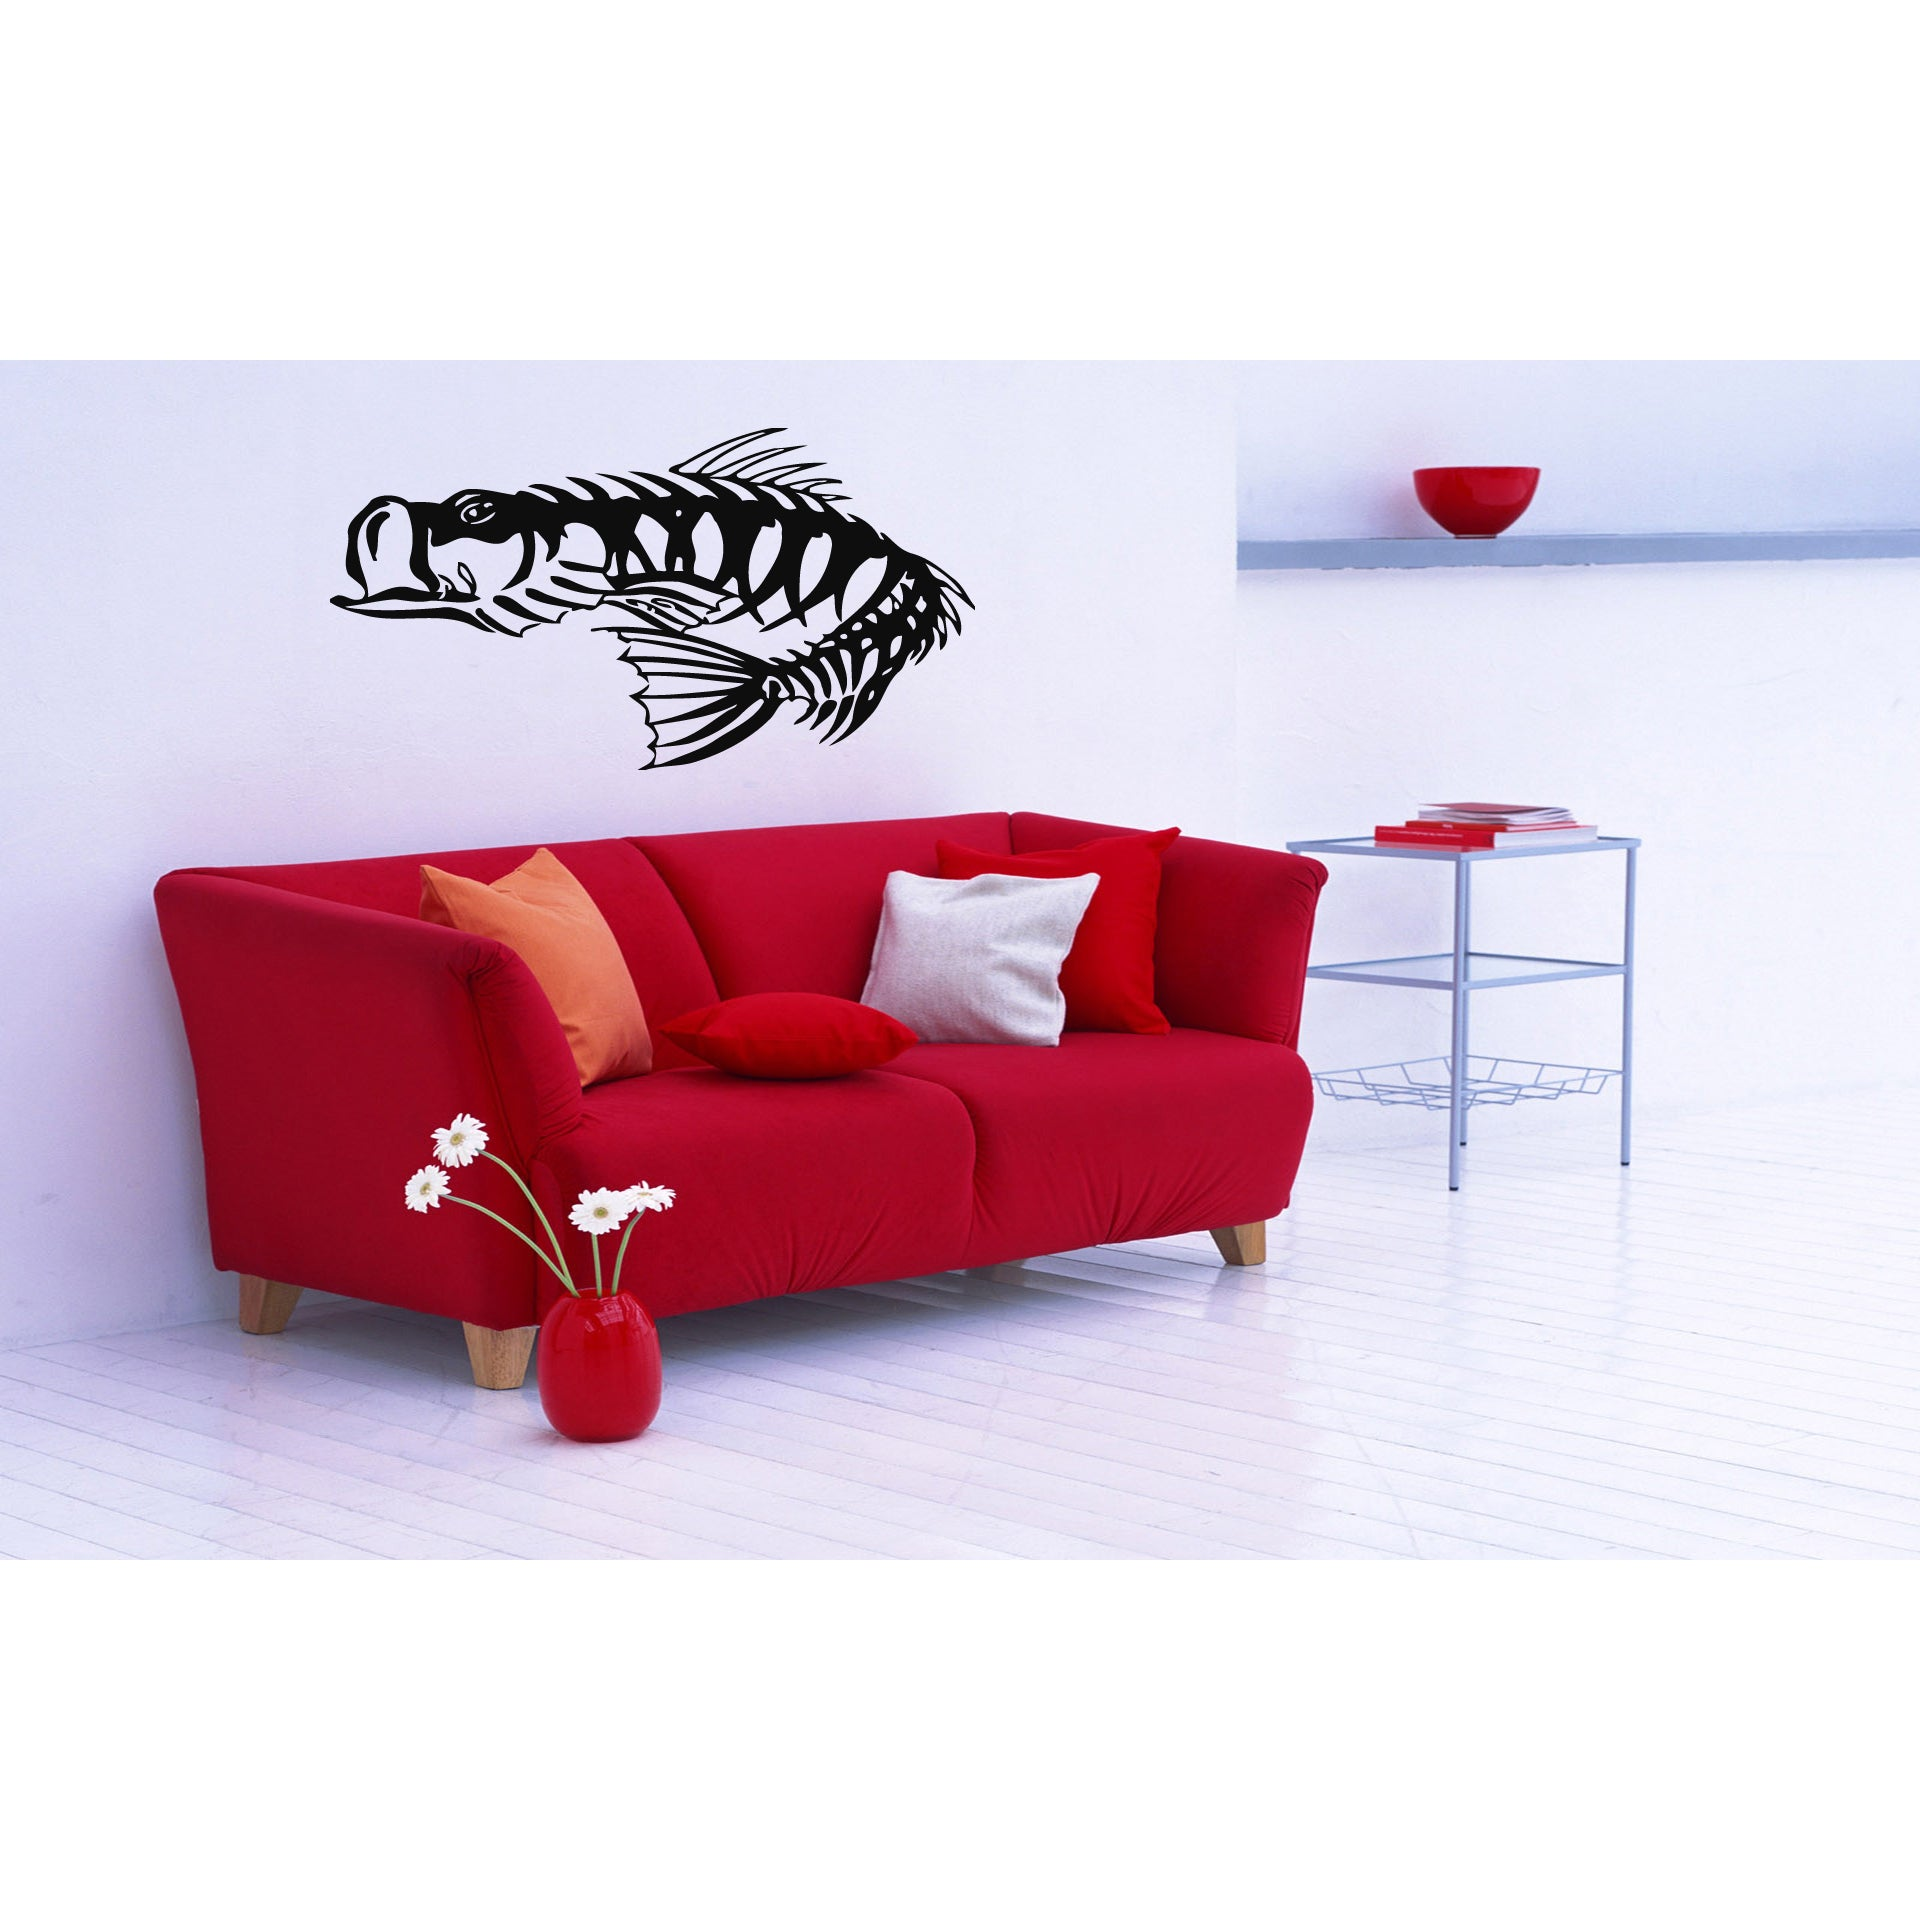 Fish Skeleton Wall Art Sticker Decal (22 inches x 28 inch...